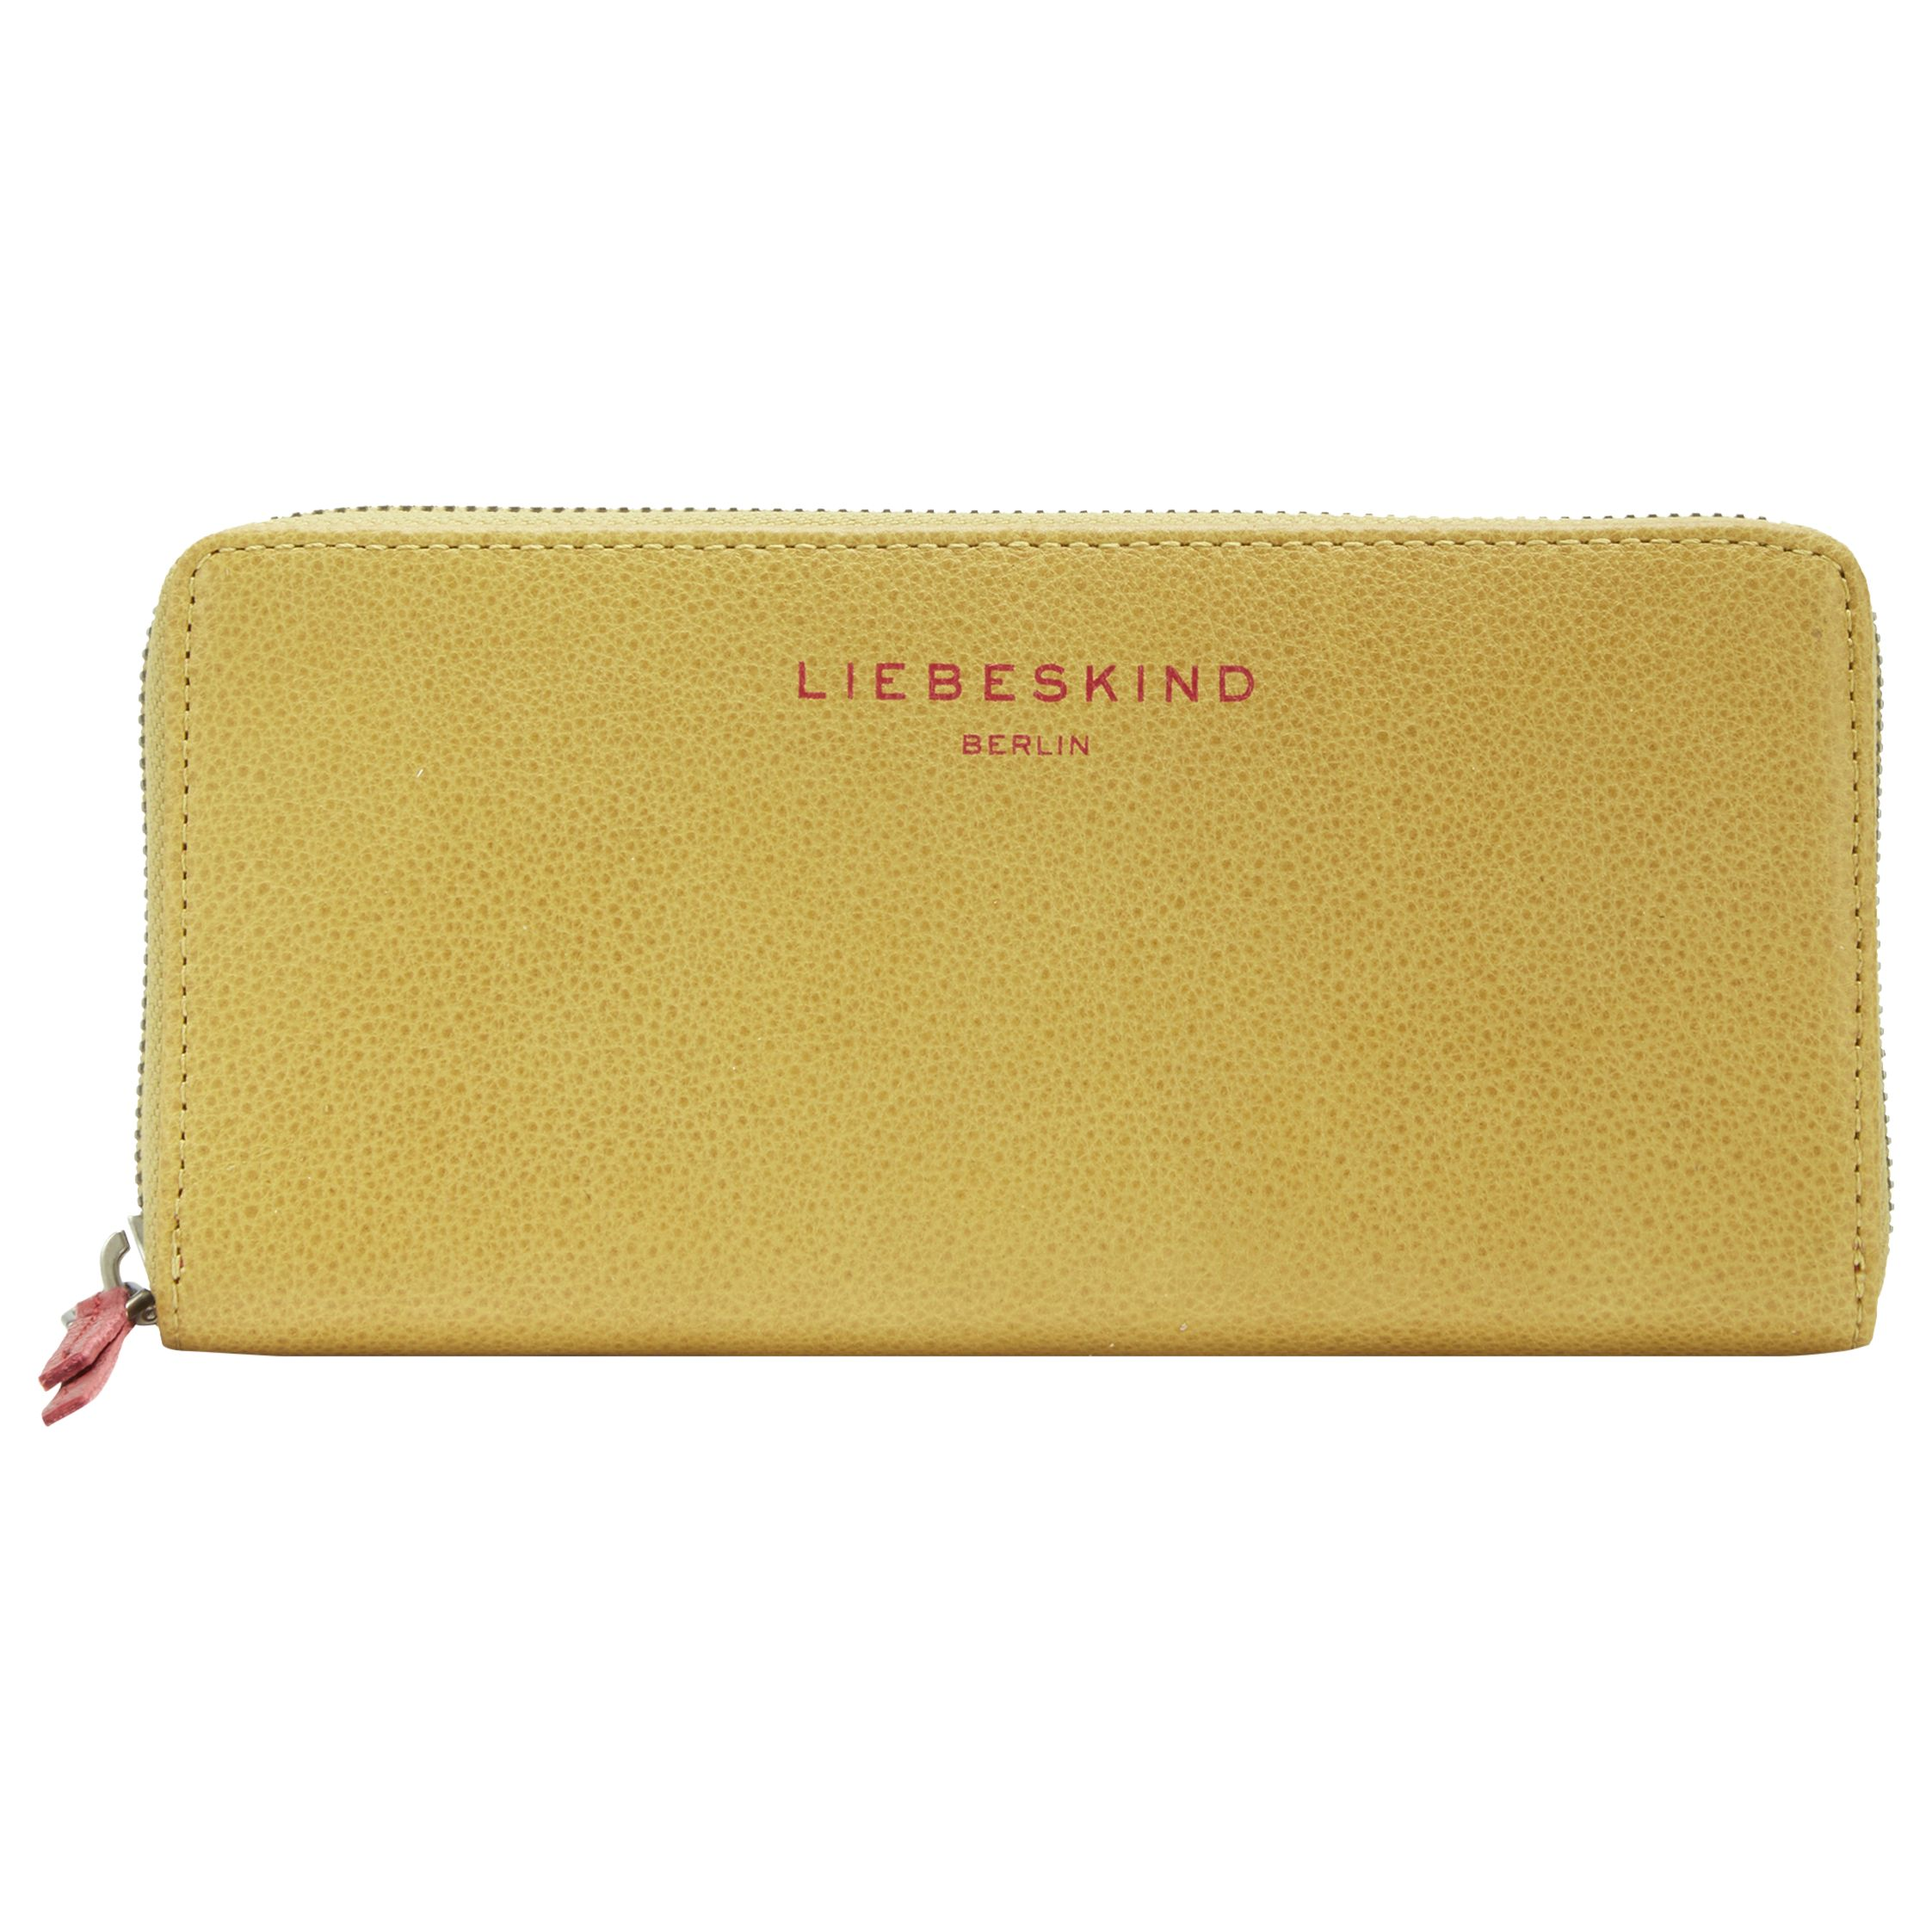 Liebeskind Liebeskind Sally F7 Leather Zip Around Purse